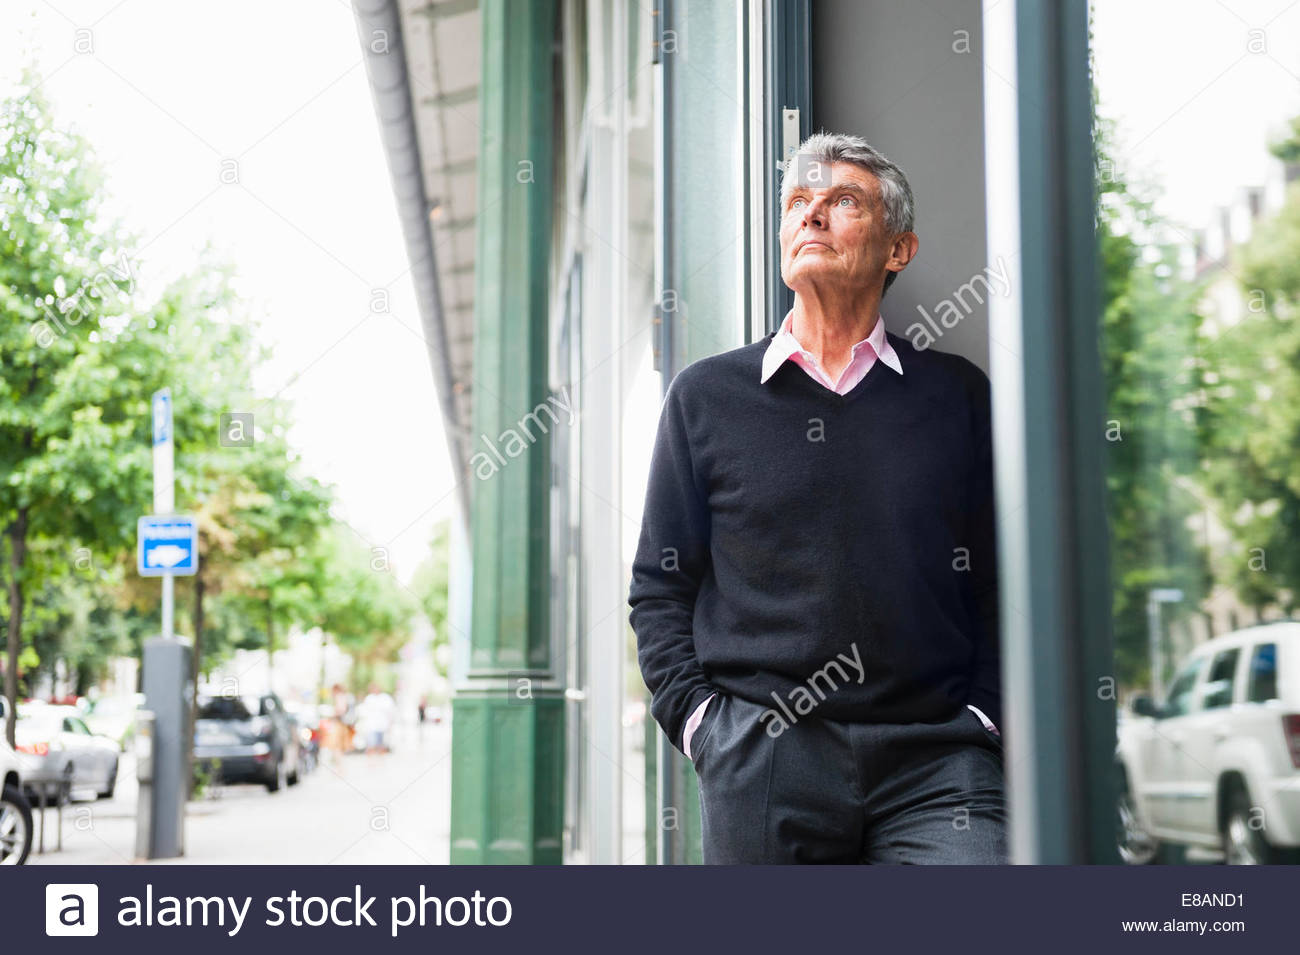 Sad senior man looking up from city street - Stock Image